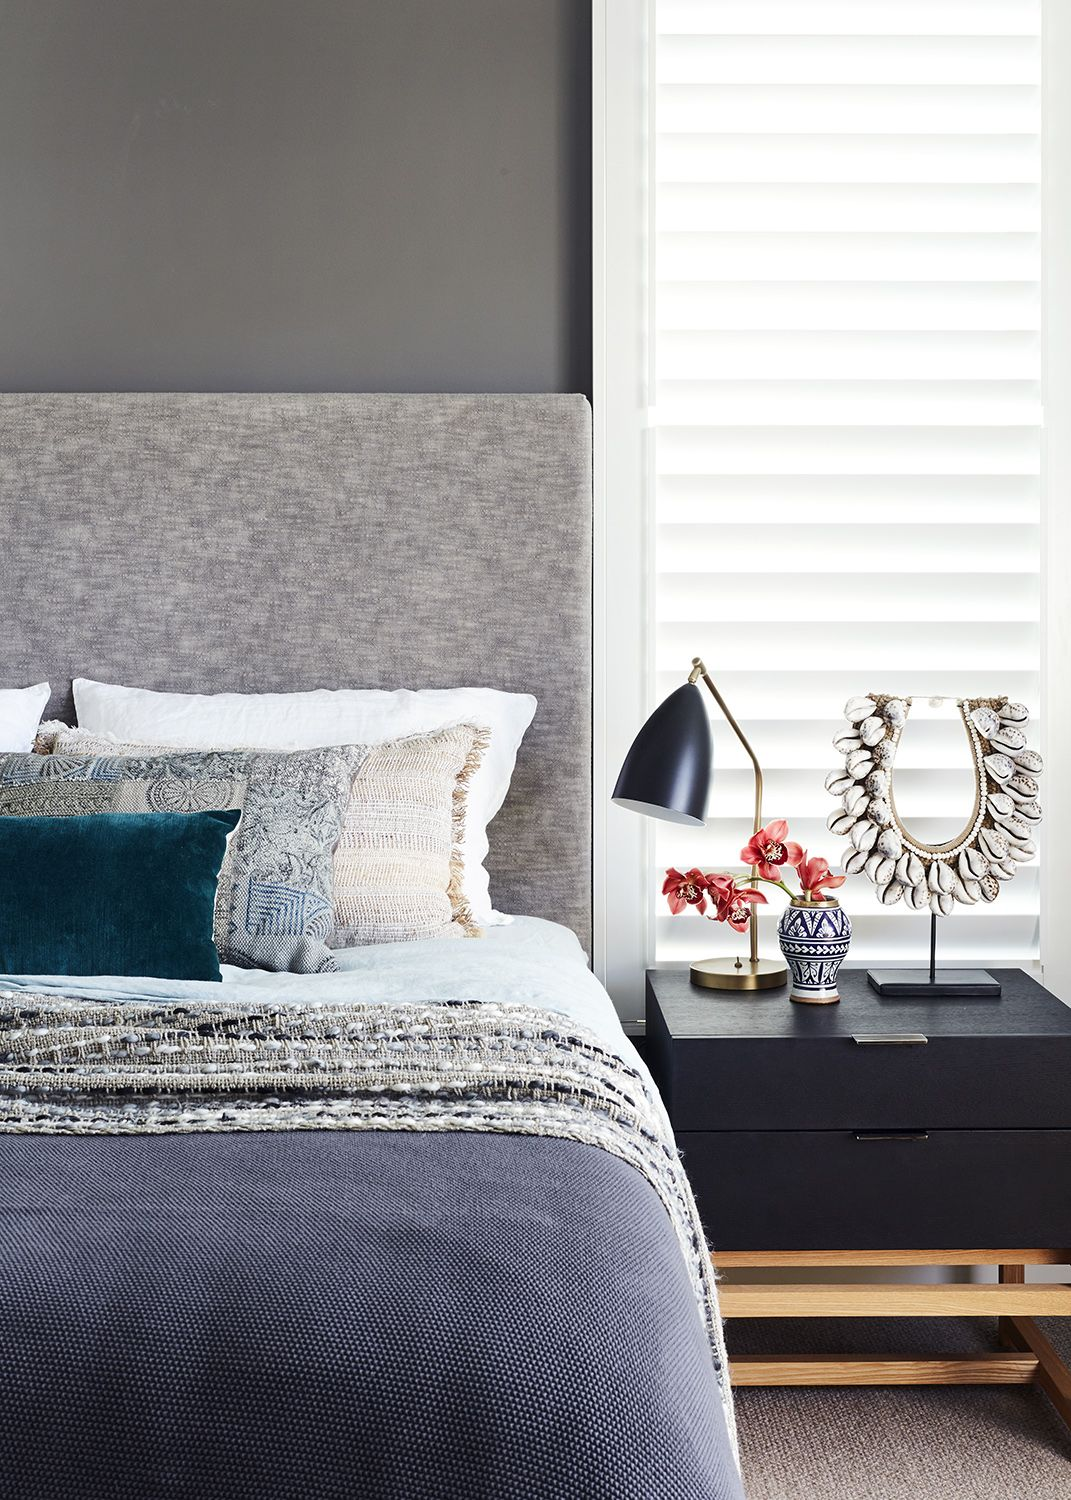 title | Boho Bedroom Gray And Teal